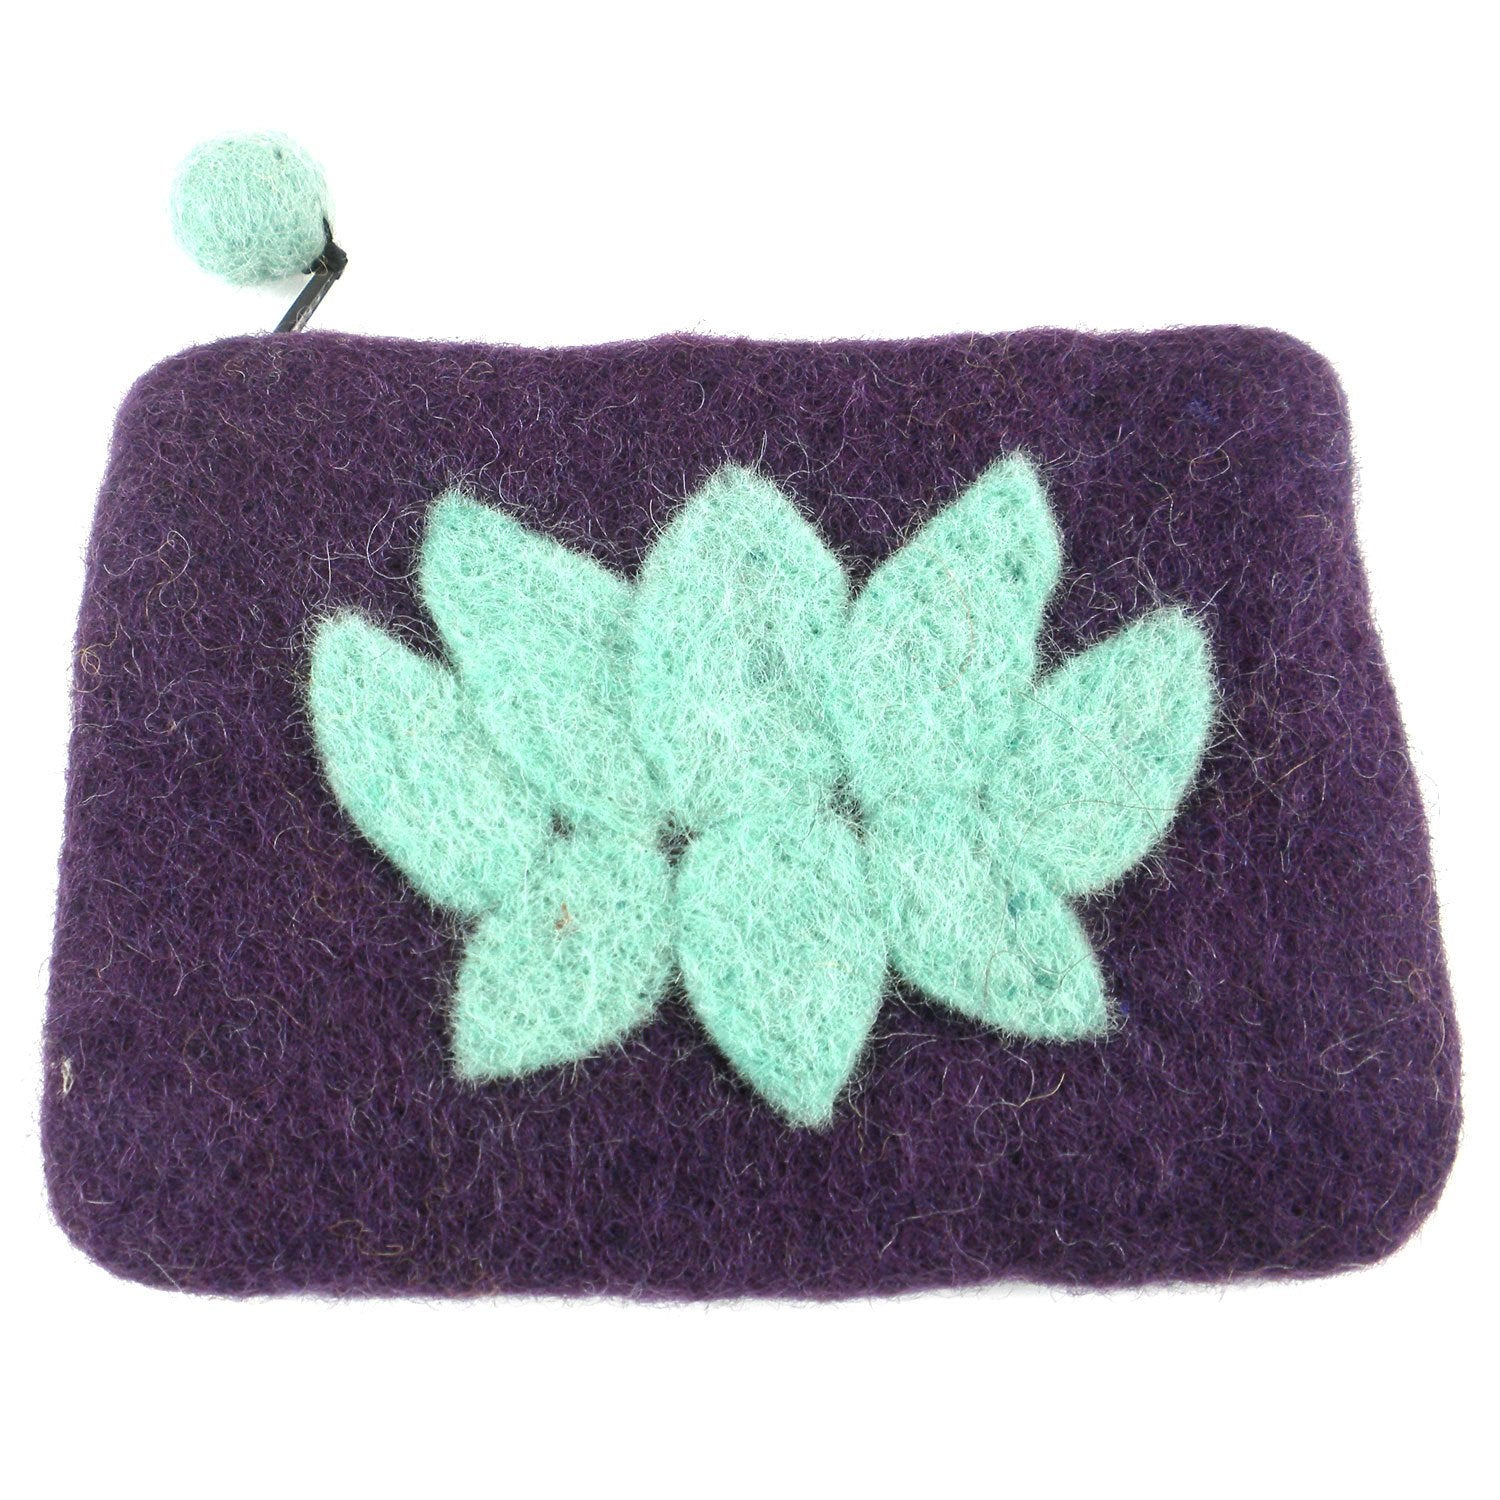 Lotus Flower Felt Clutch - Wine